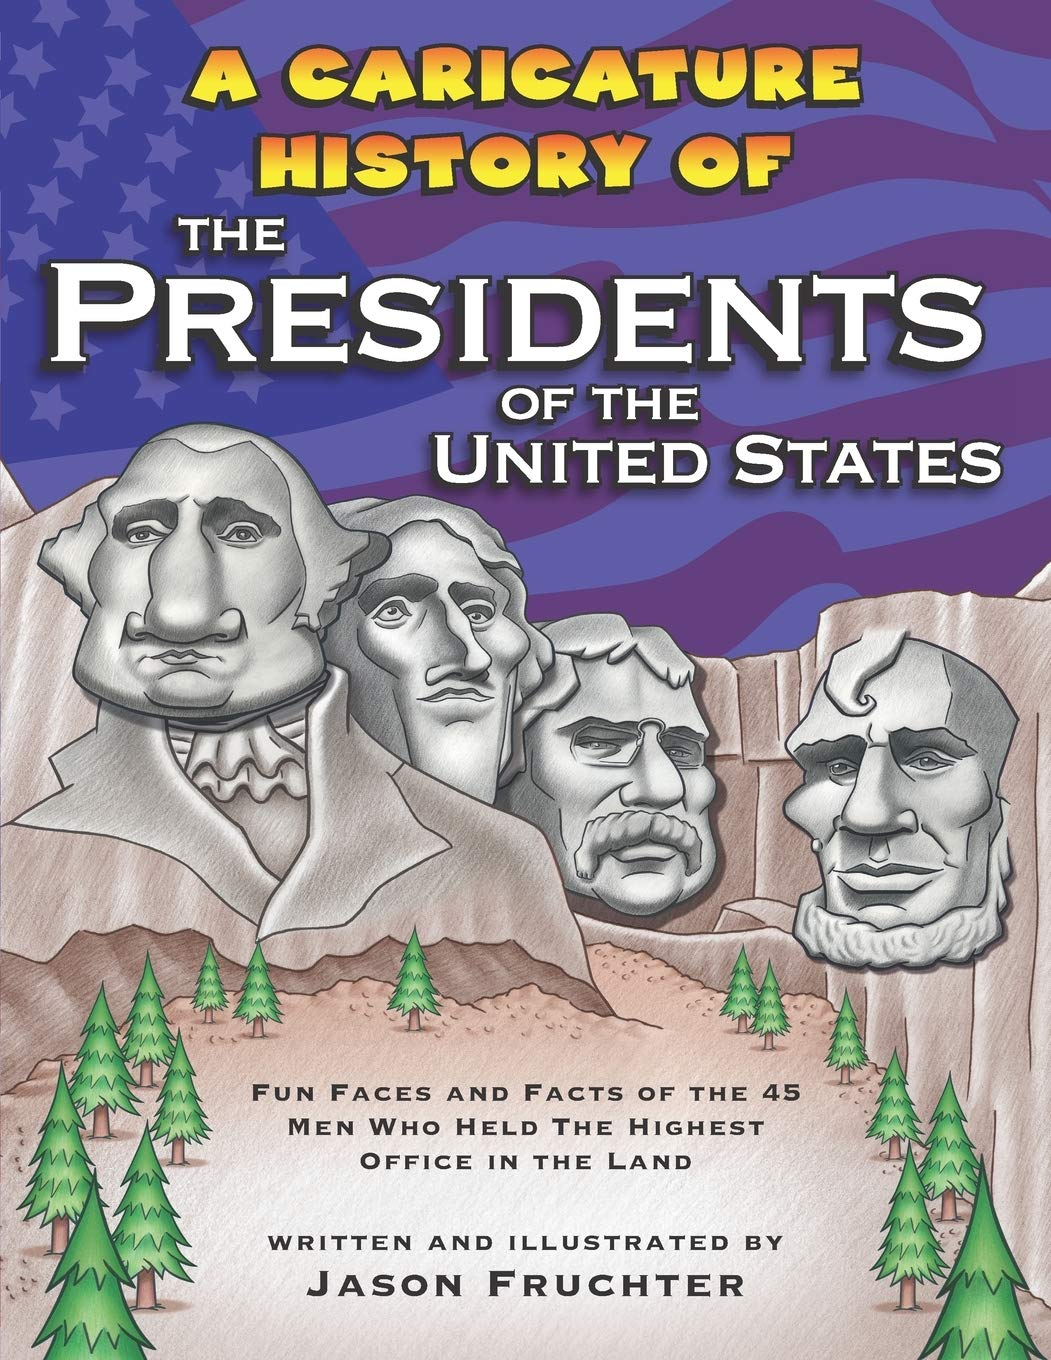 A Caricature History of the Presidents of the United States: Fun Faces and Facts of the 45 Men Who Held the Highest Office in the Land